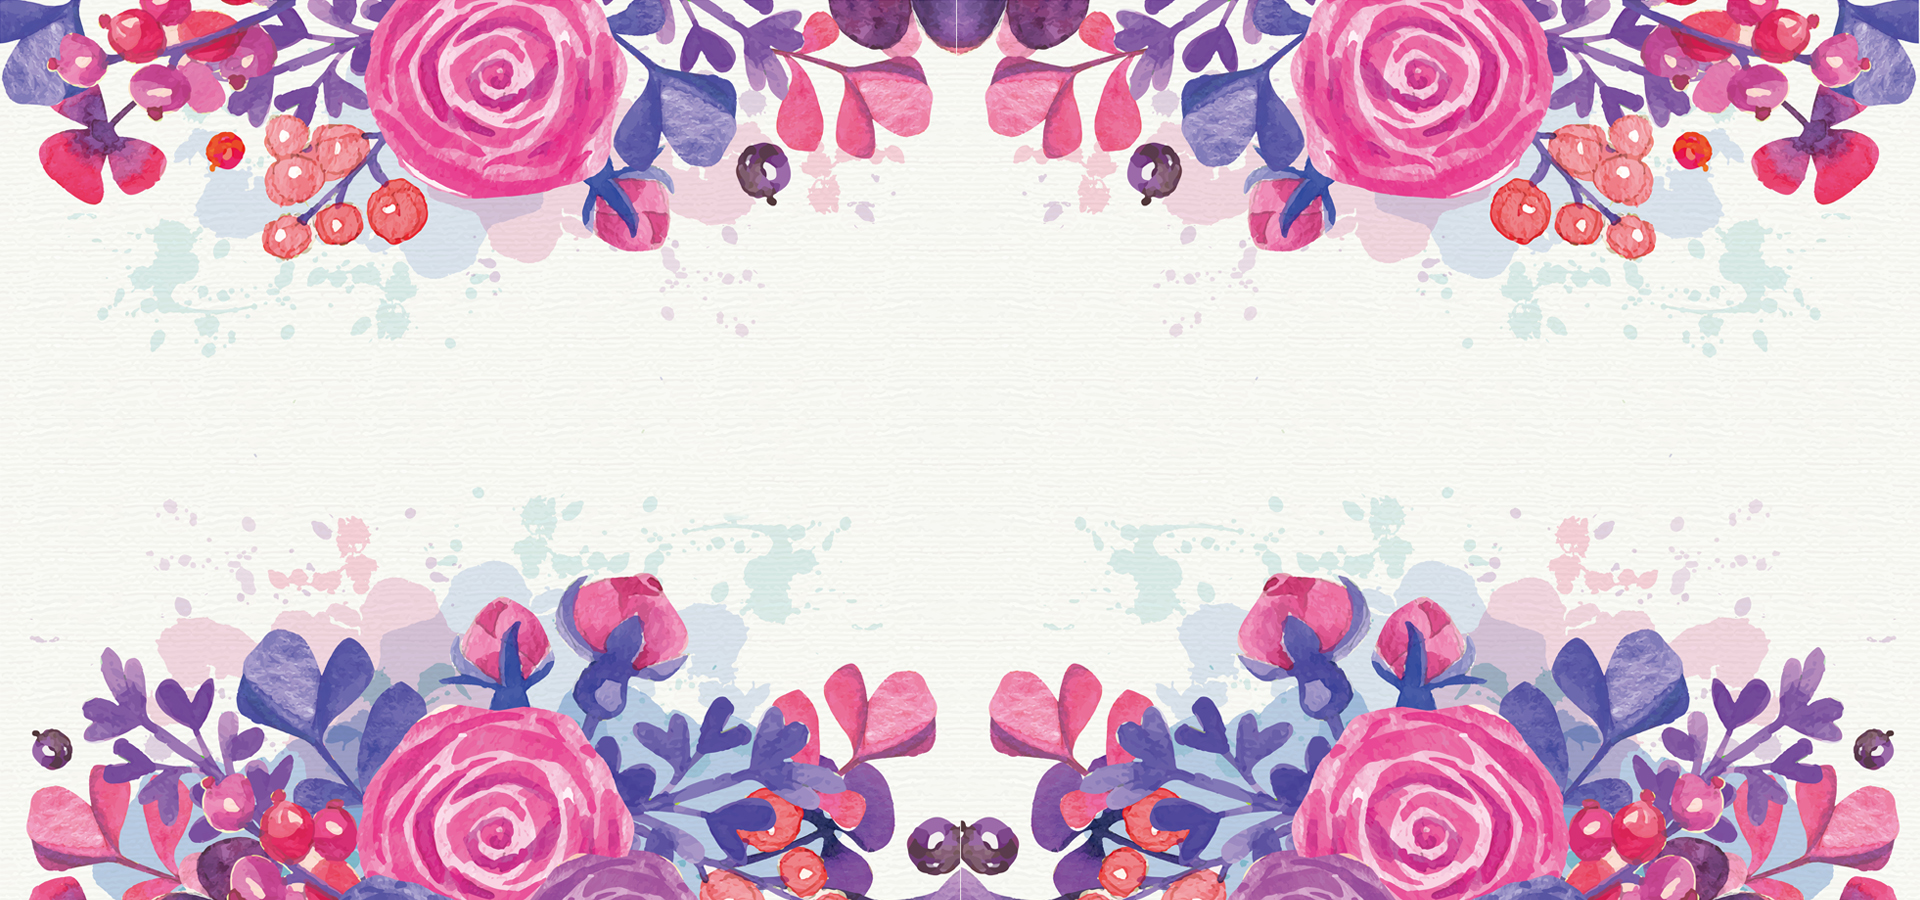 hd fashion flowers background material formwork design